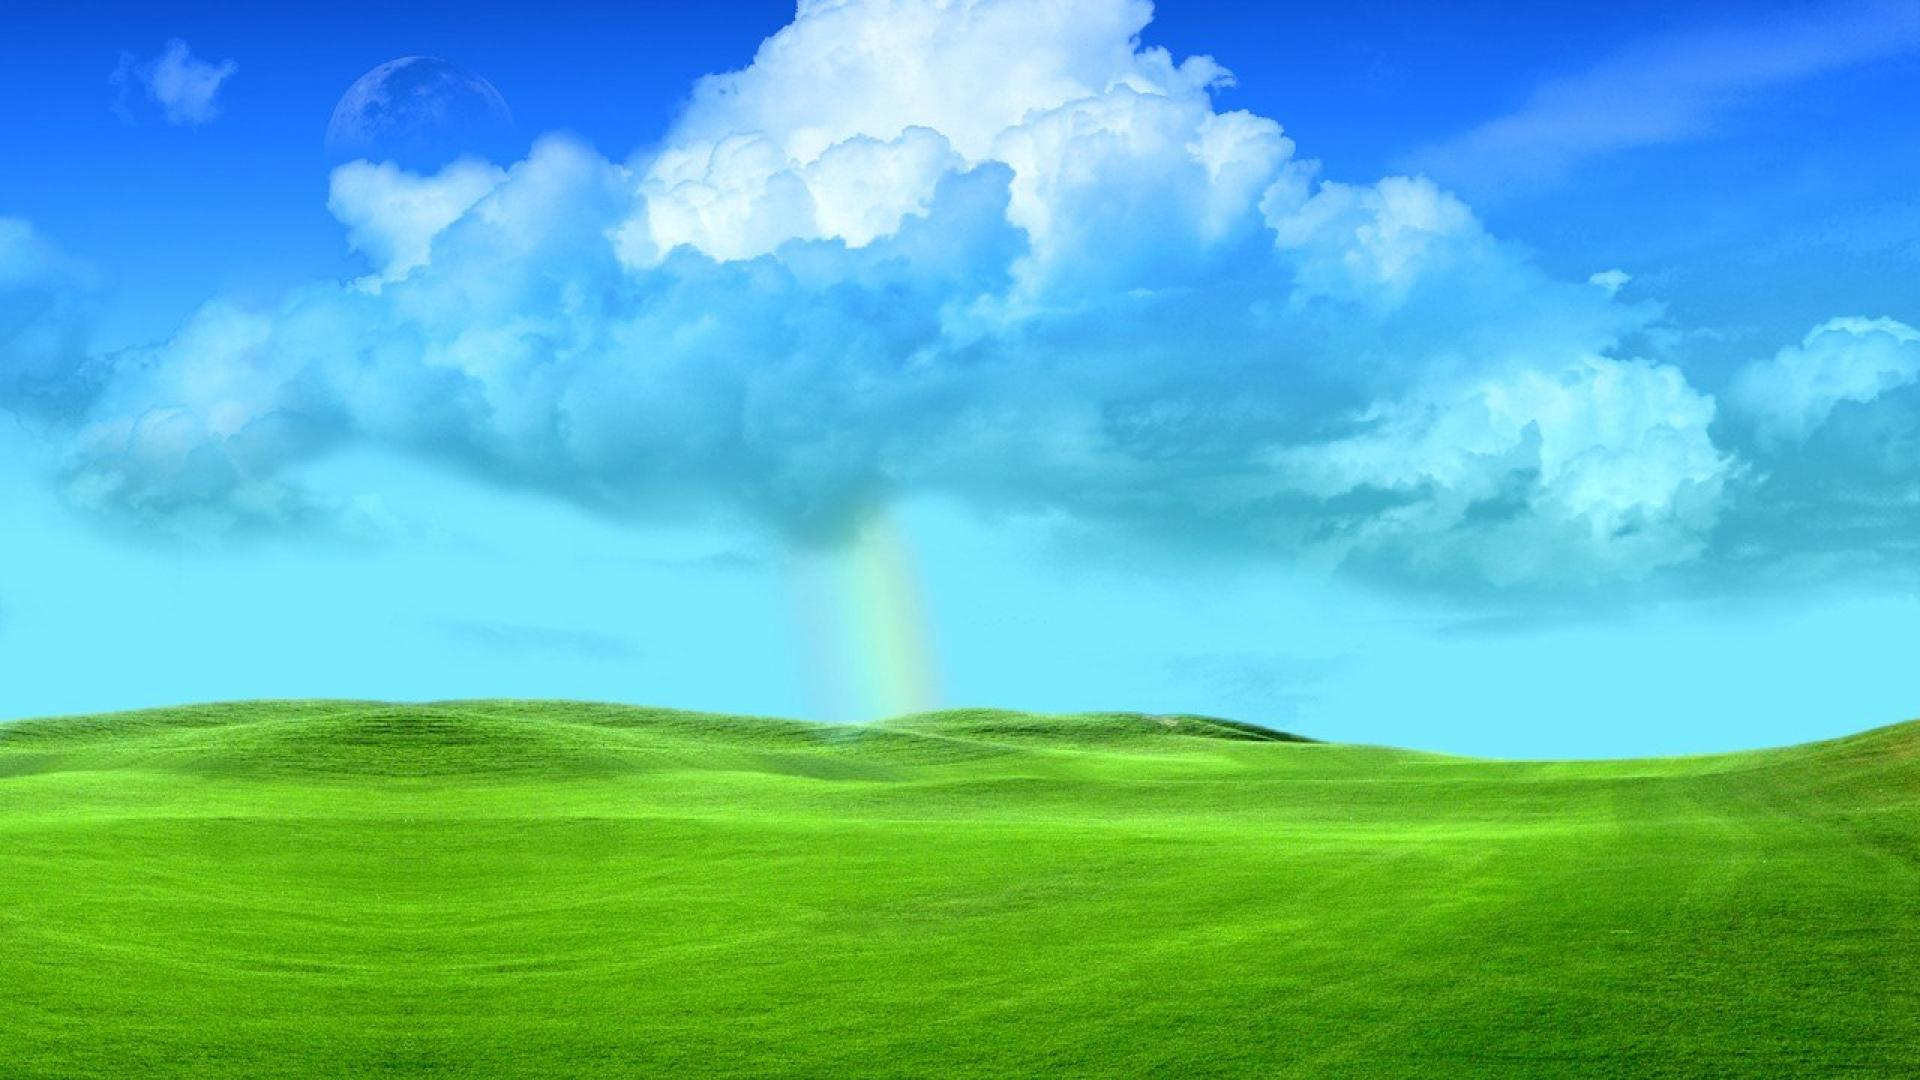 grass and sky wallpaper - sf wallpaper